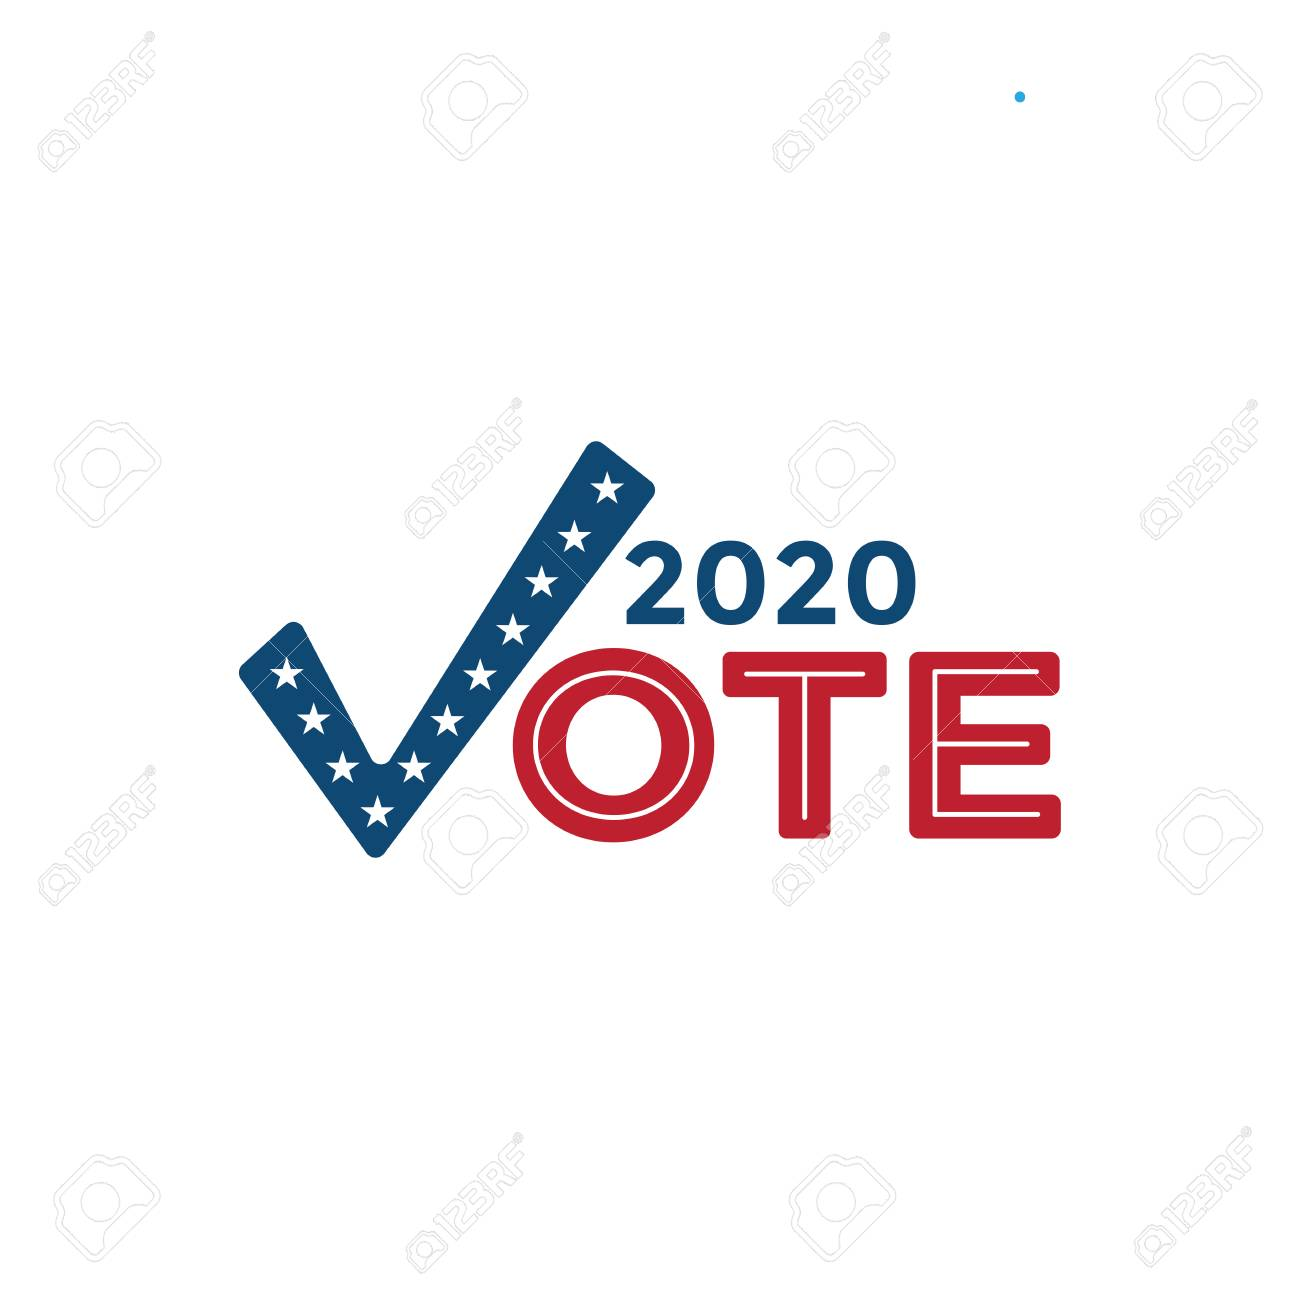 Voting 2020 Icon w Vote, Government, and Patriotic Symbolism and Colors - 117427747